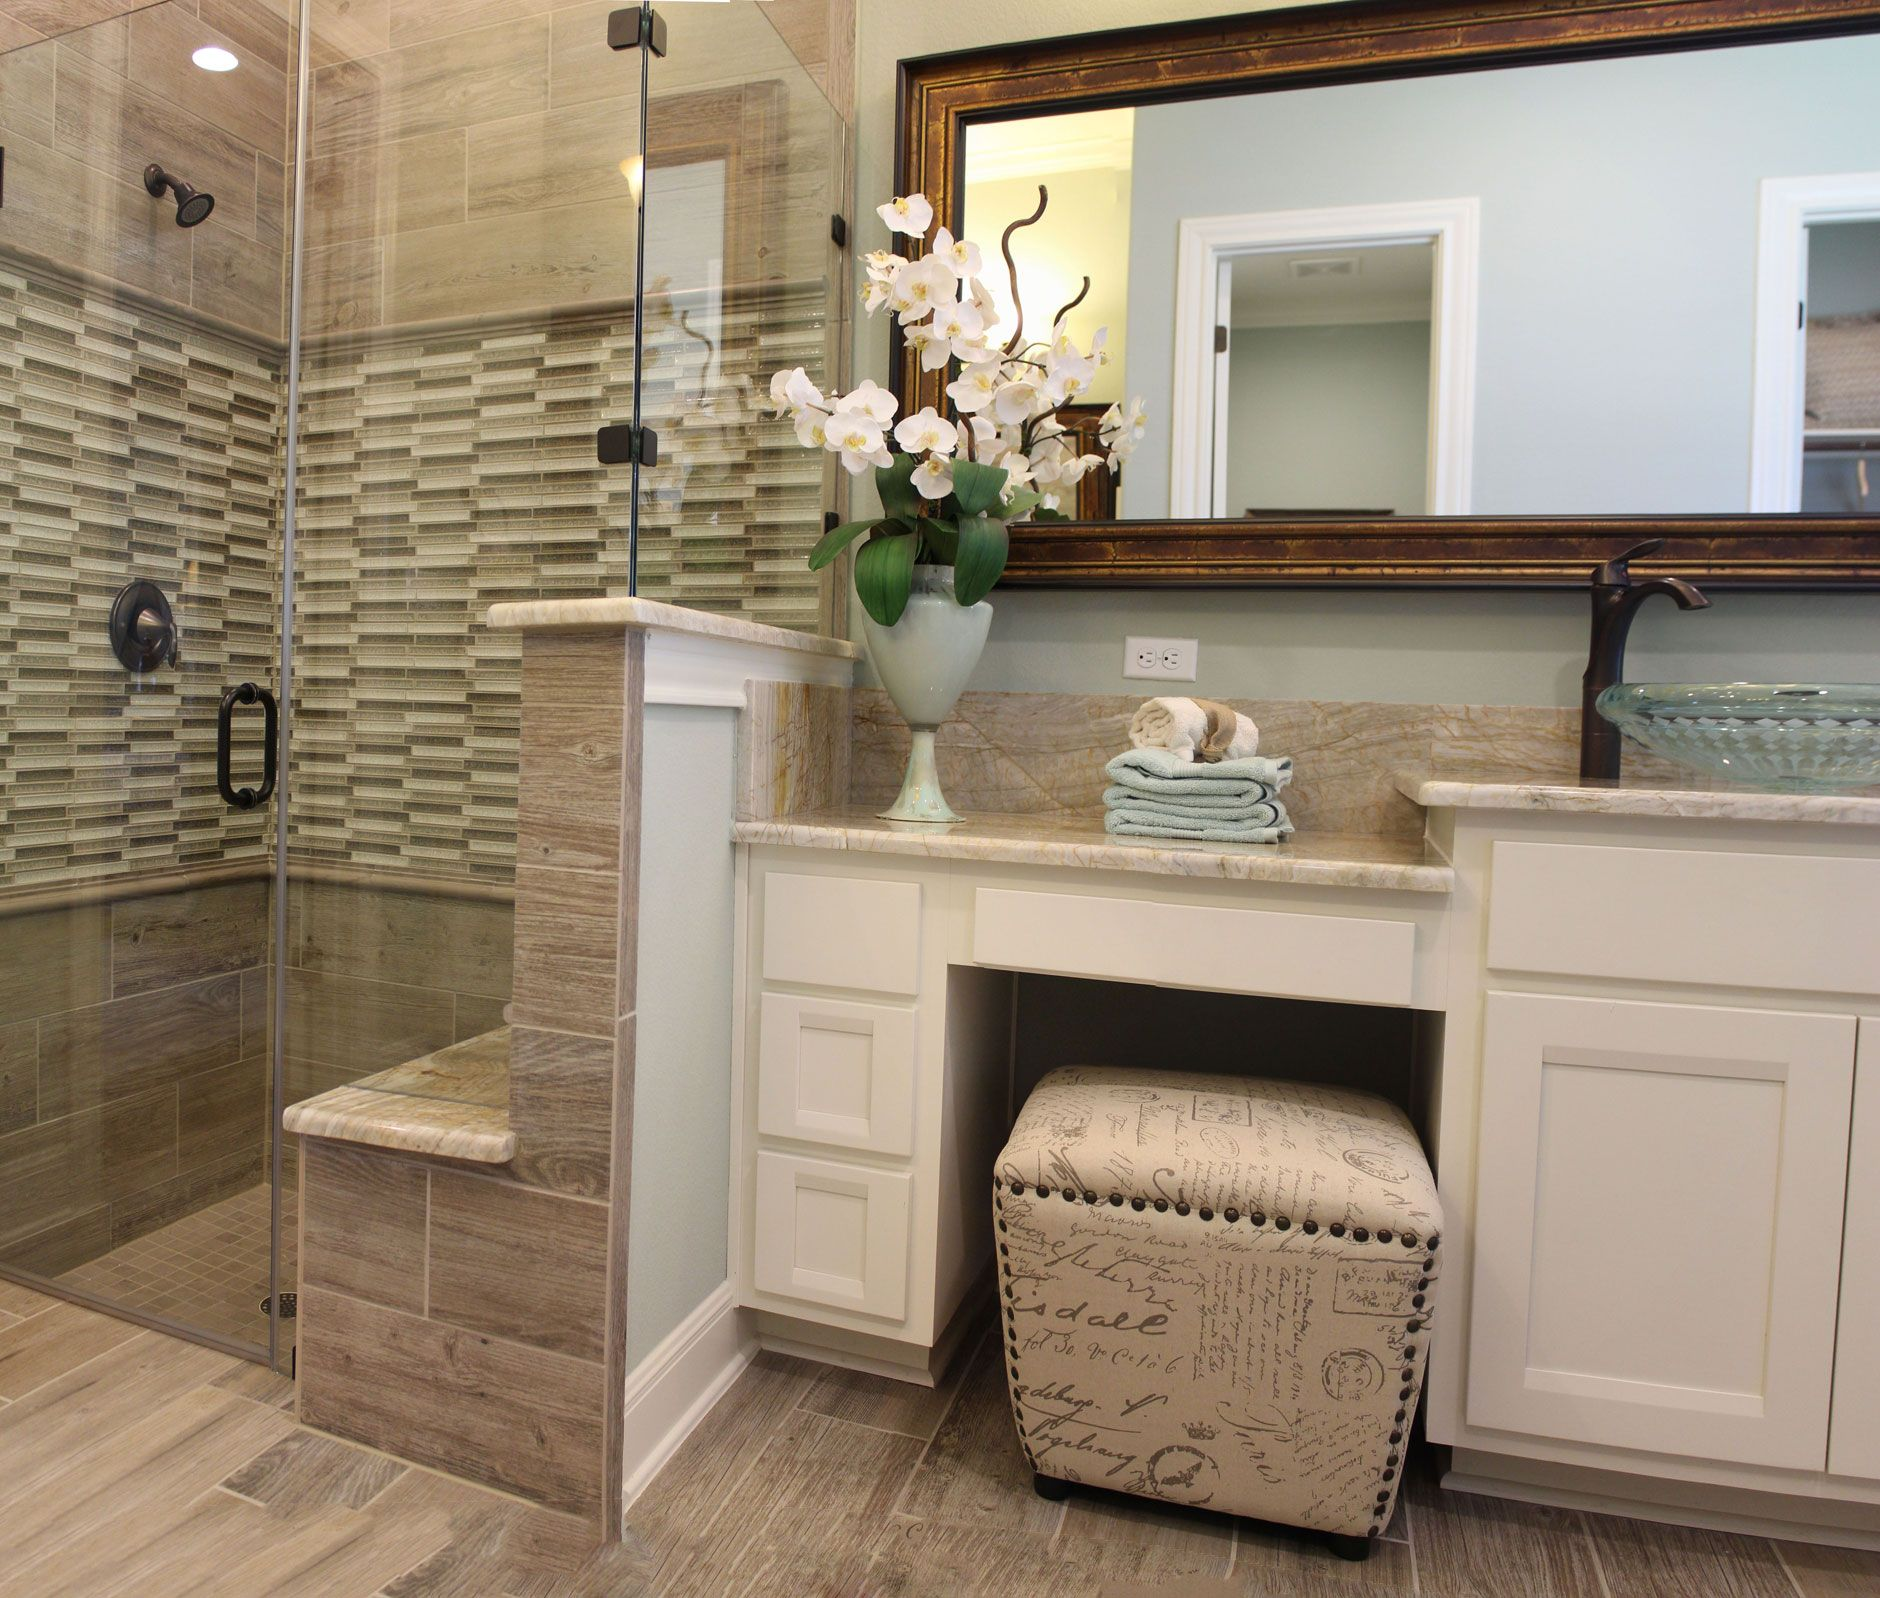 Master Bath With White Cabinets And Vanity Seat White Bathroom Cabinets Master Bathroom Vanity Bathroom Remodel Master